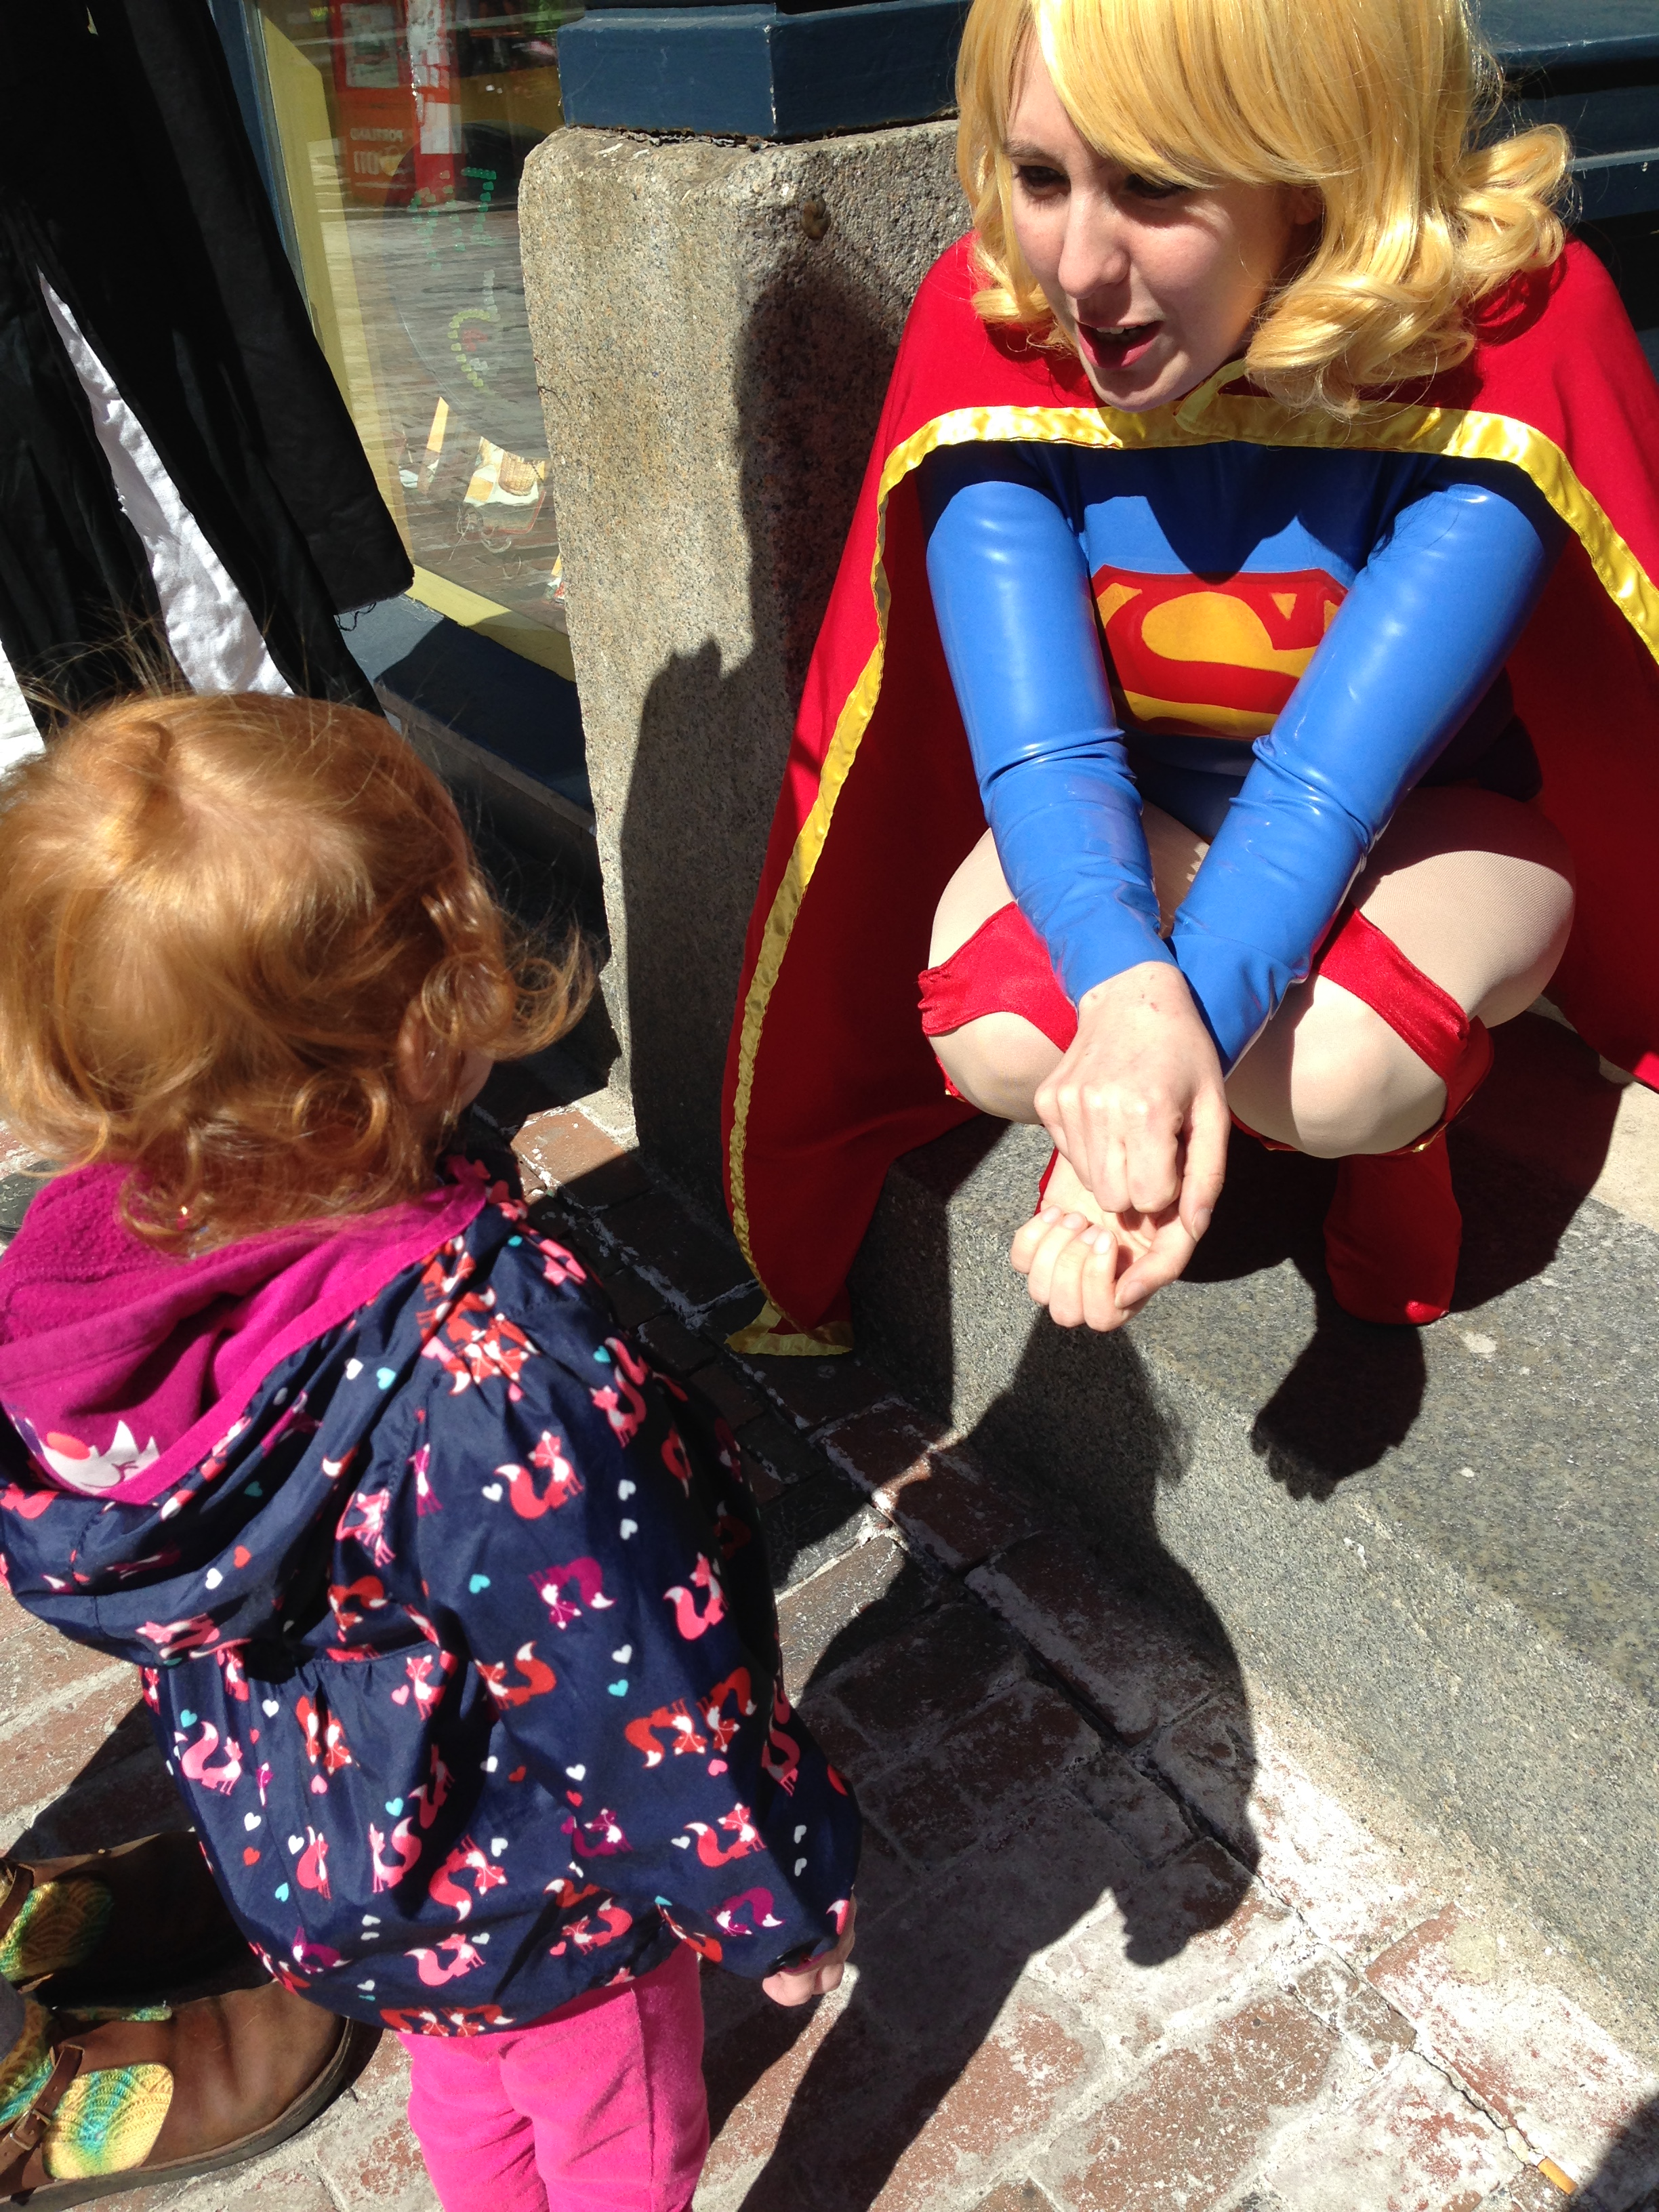 Chatting with Supergirl